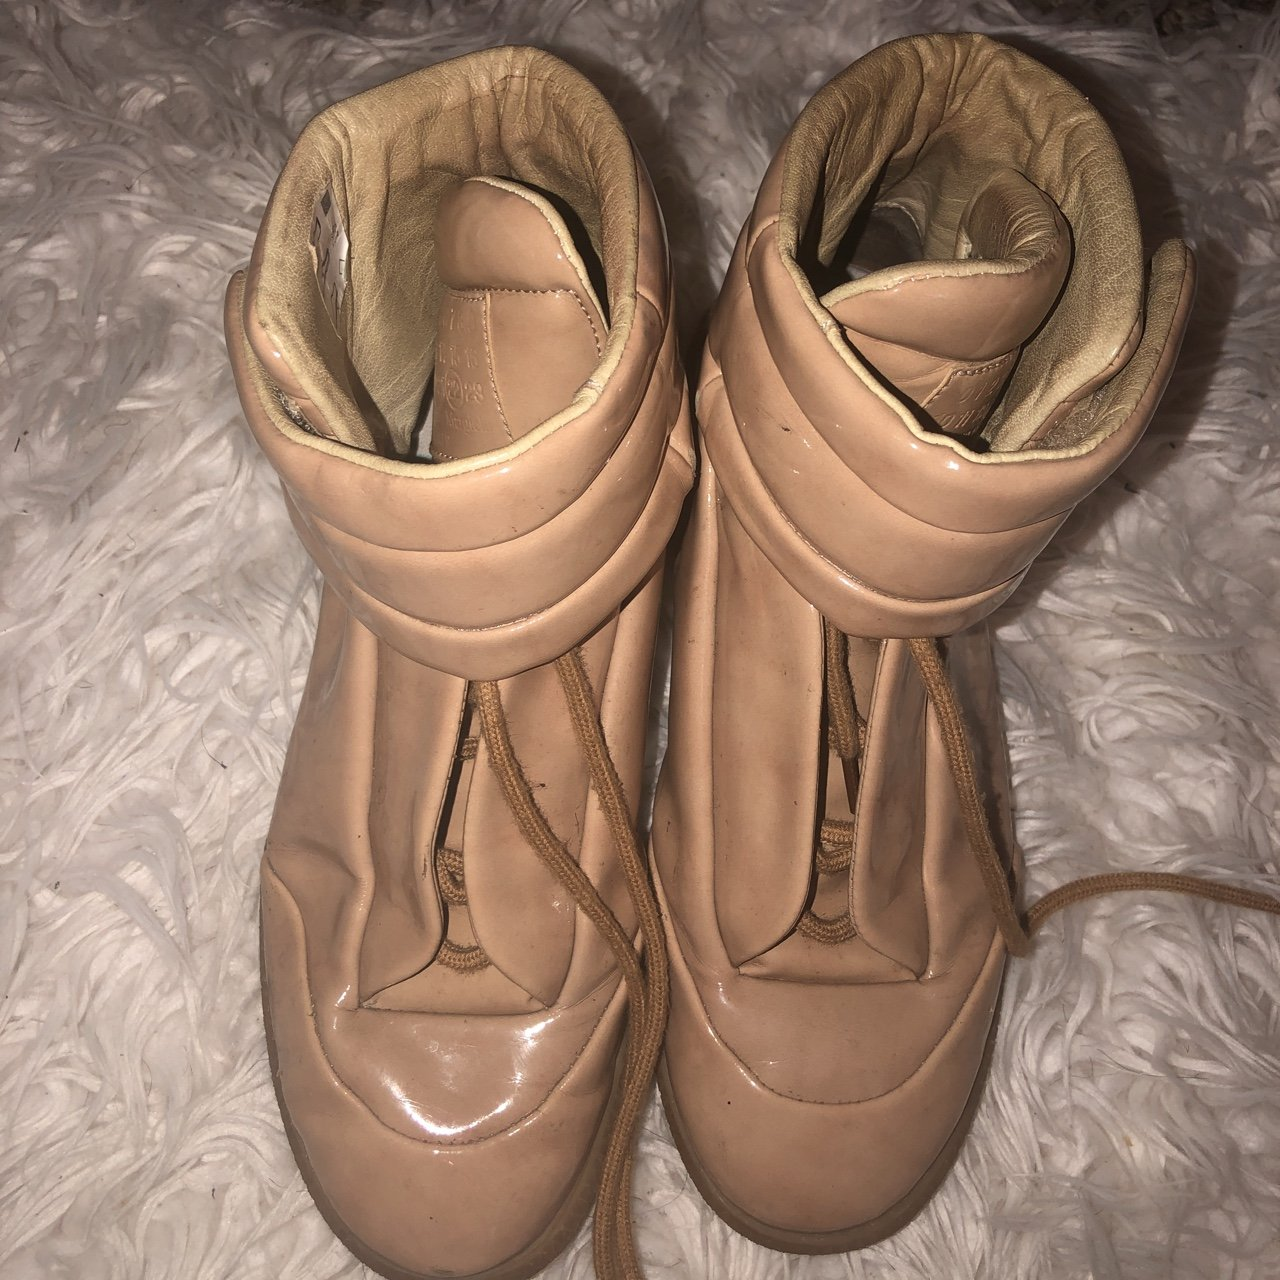 insides Patent Future 37 Margiela High Maison Depop Nude Are Top xawOTqxY